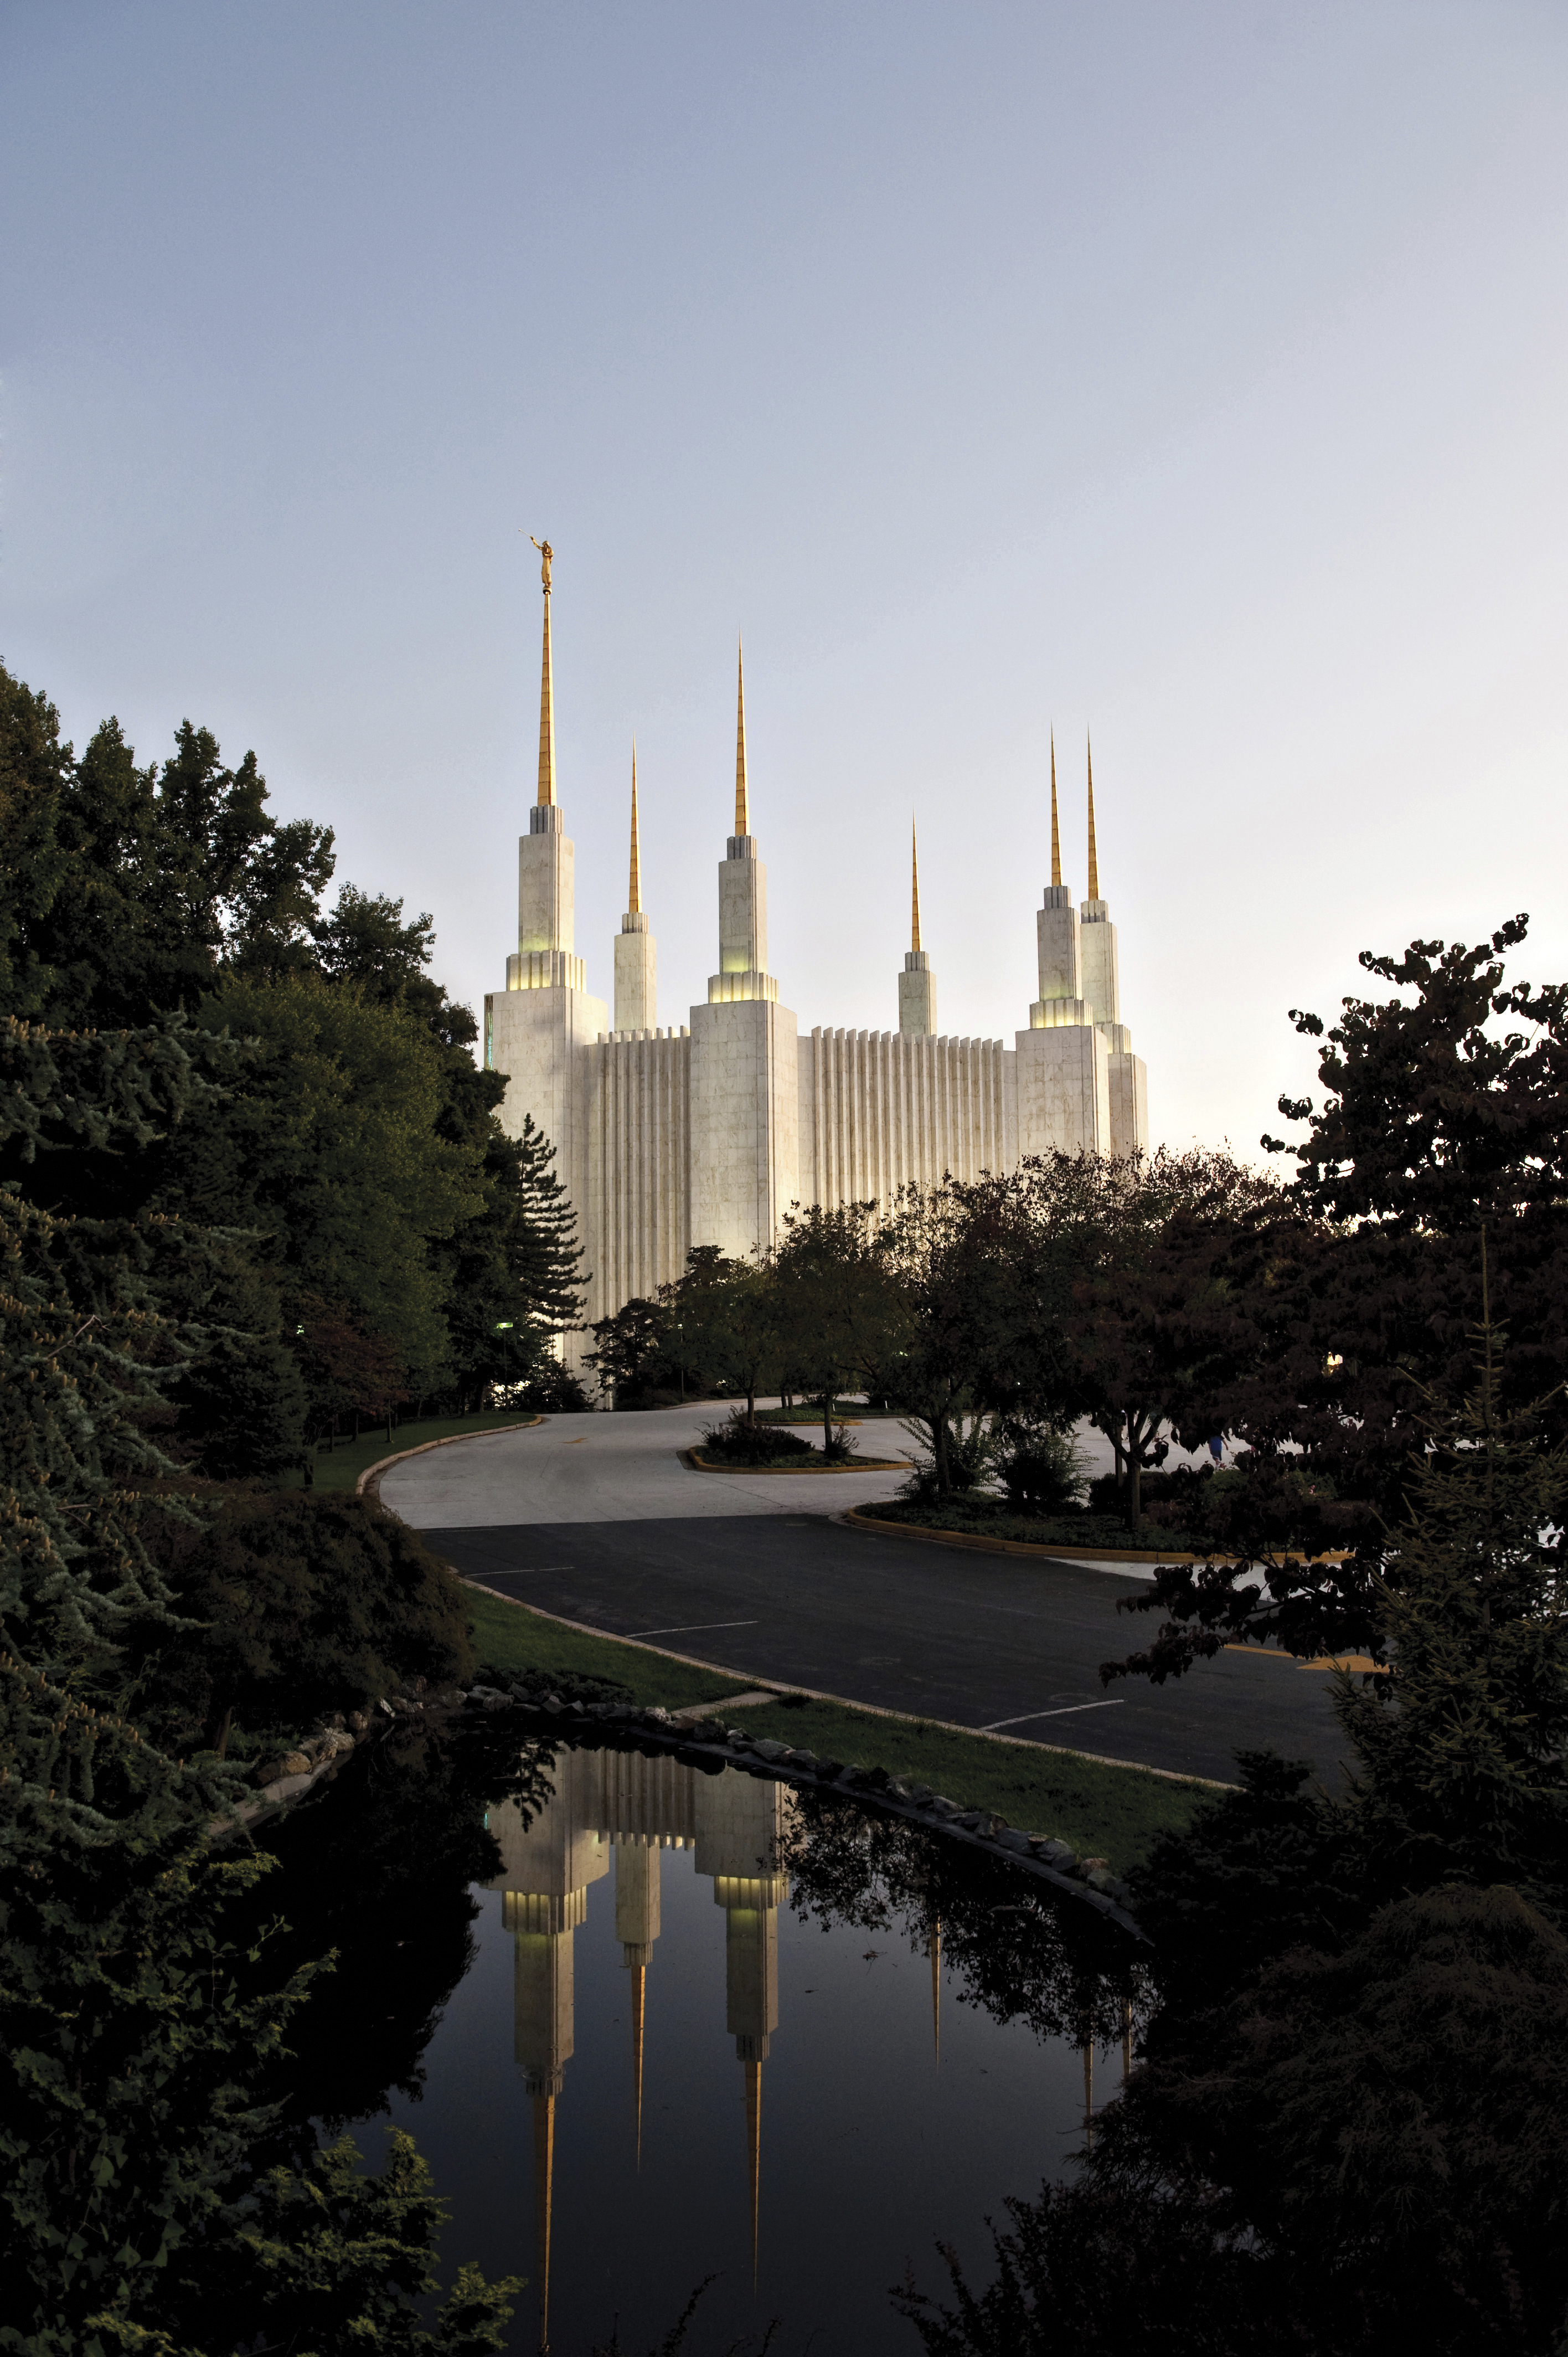 The Washington D.C. Temple during sunset, with the road and pond.